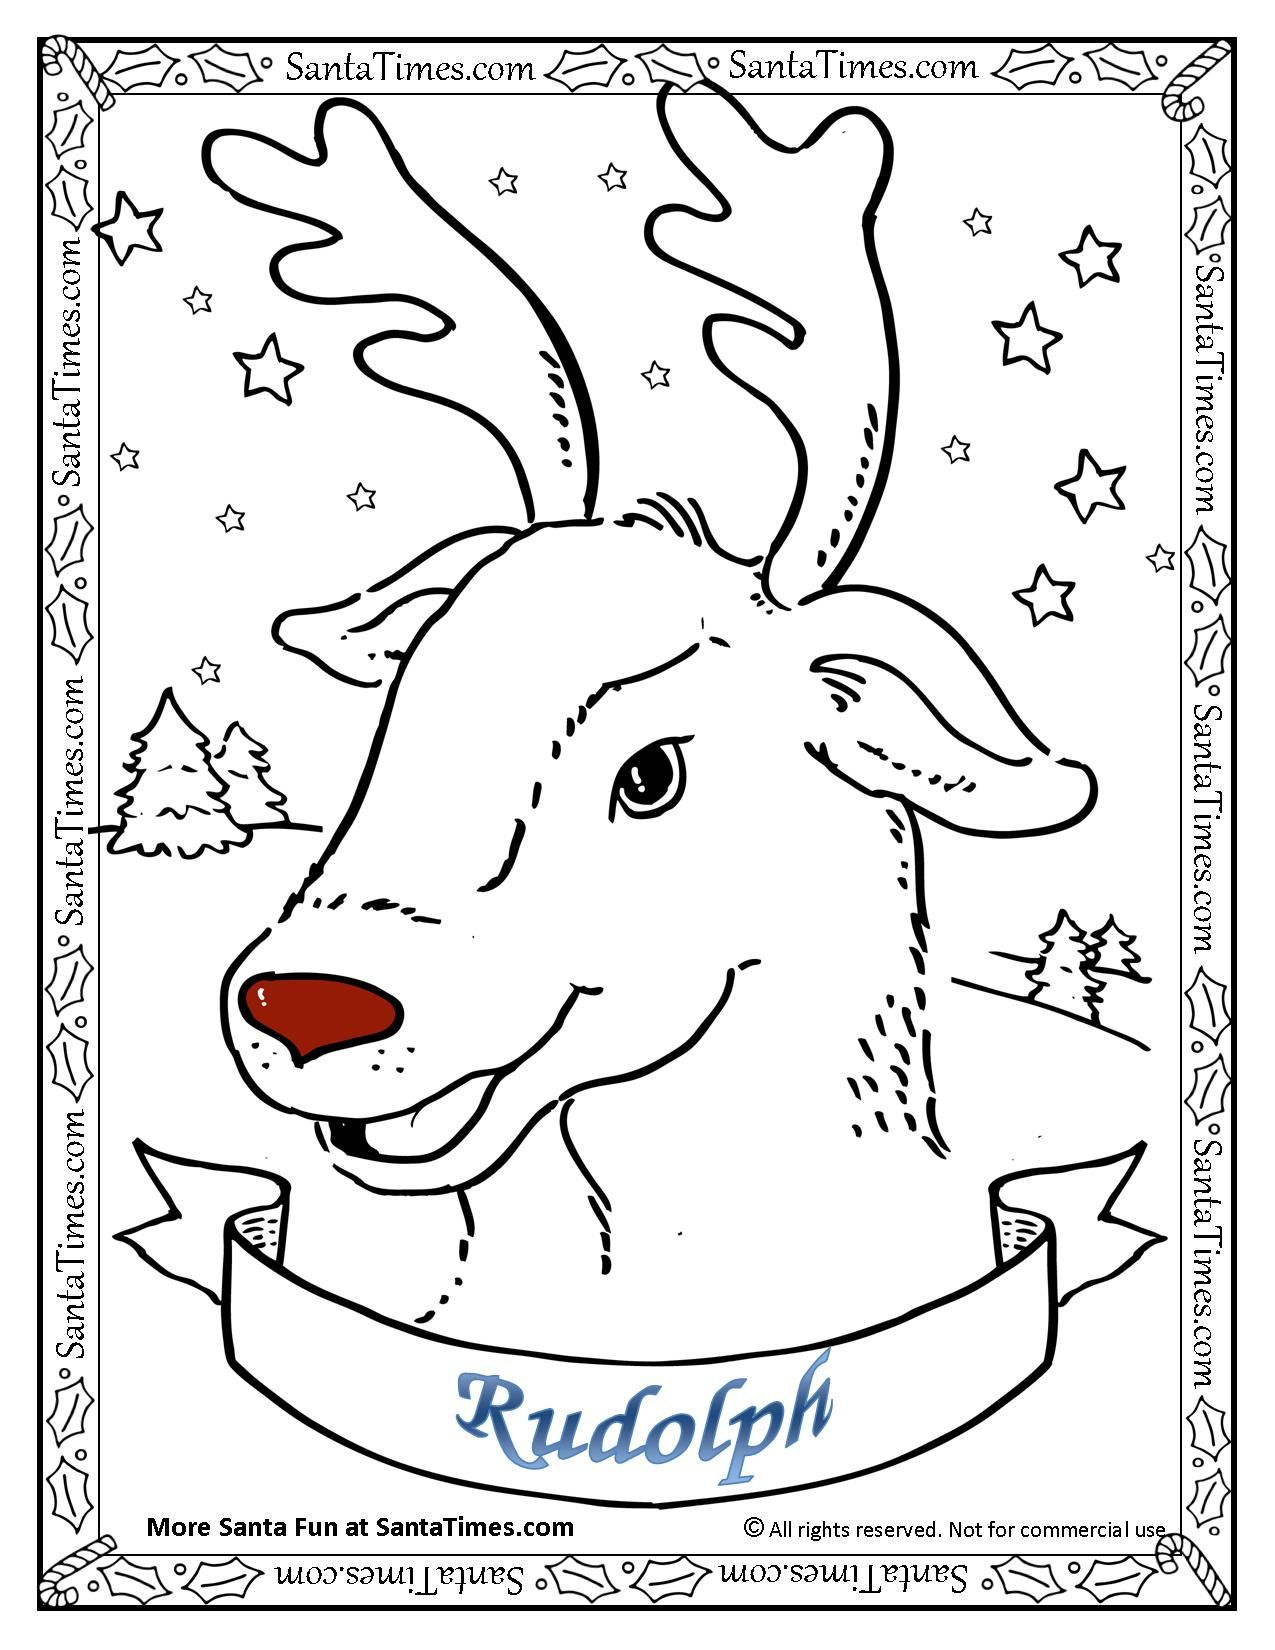 rudolph the red nosed reindeer coloring page theres more fun coloring pages at wwwsanta tcom rudolph rudolf reindeer